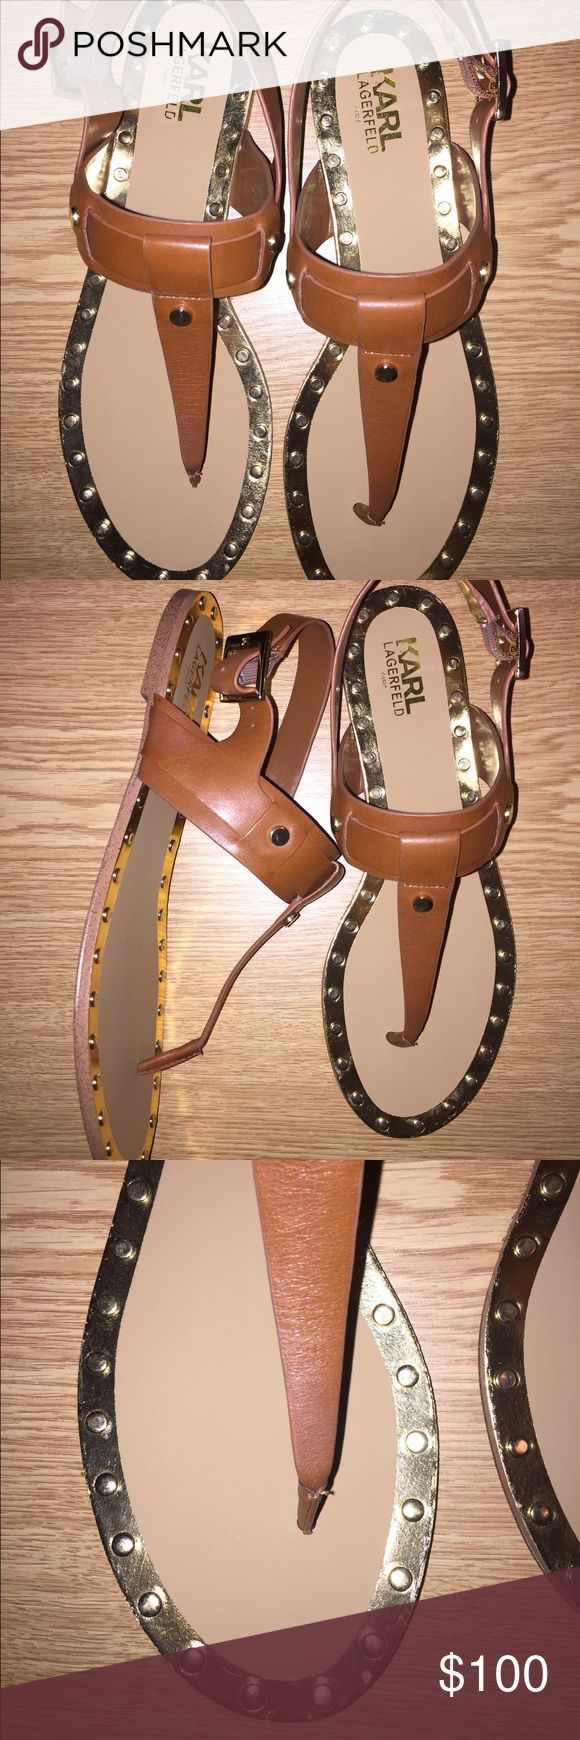 KARL LAGERFELD SANDALS Brand new. Never worn. Comfortable and stylish. Karl Lagerfeld Shoes Sandals